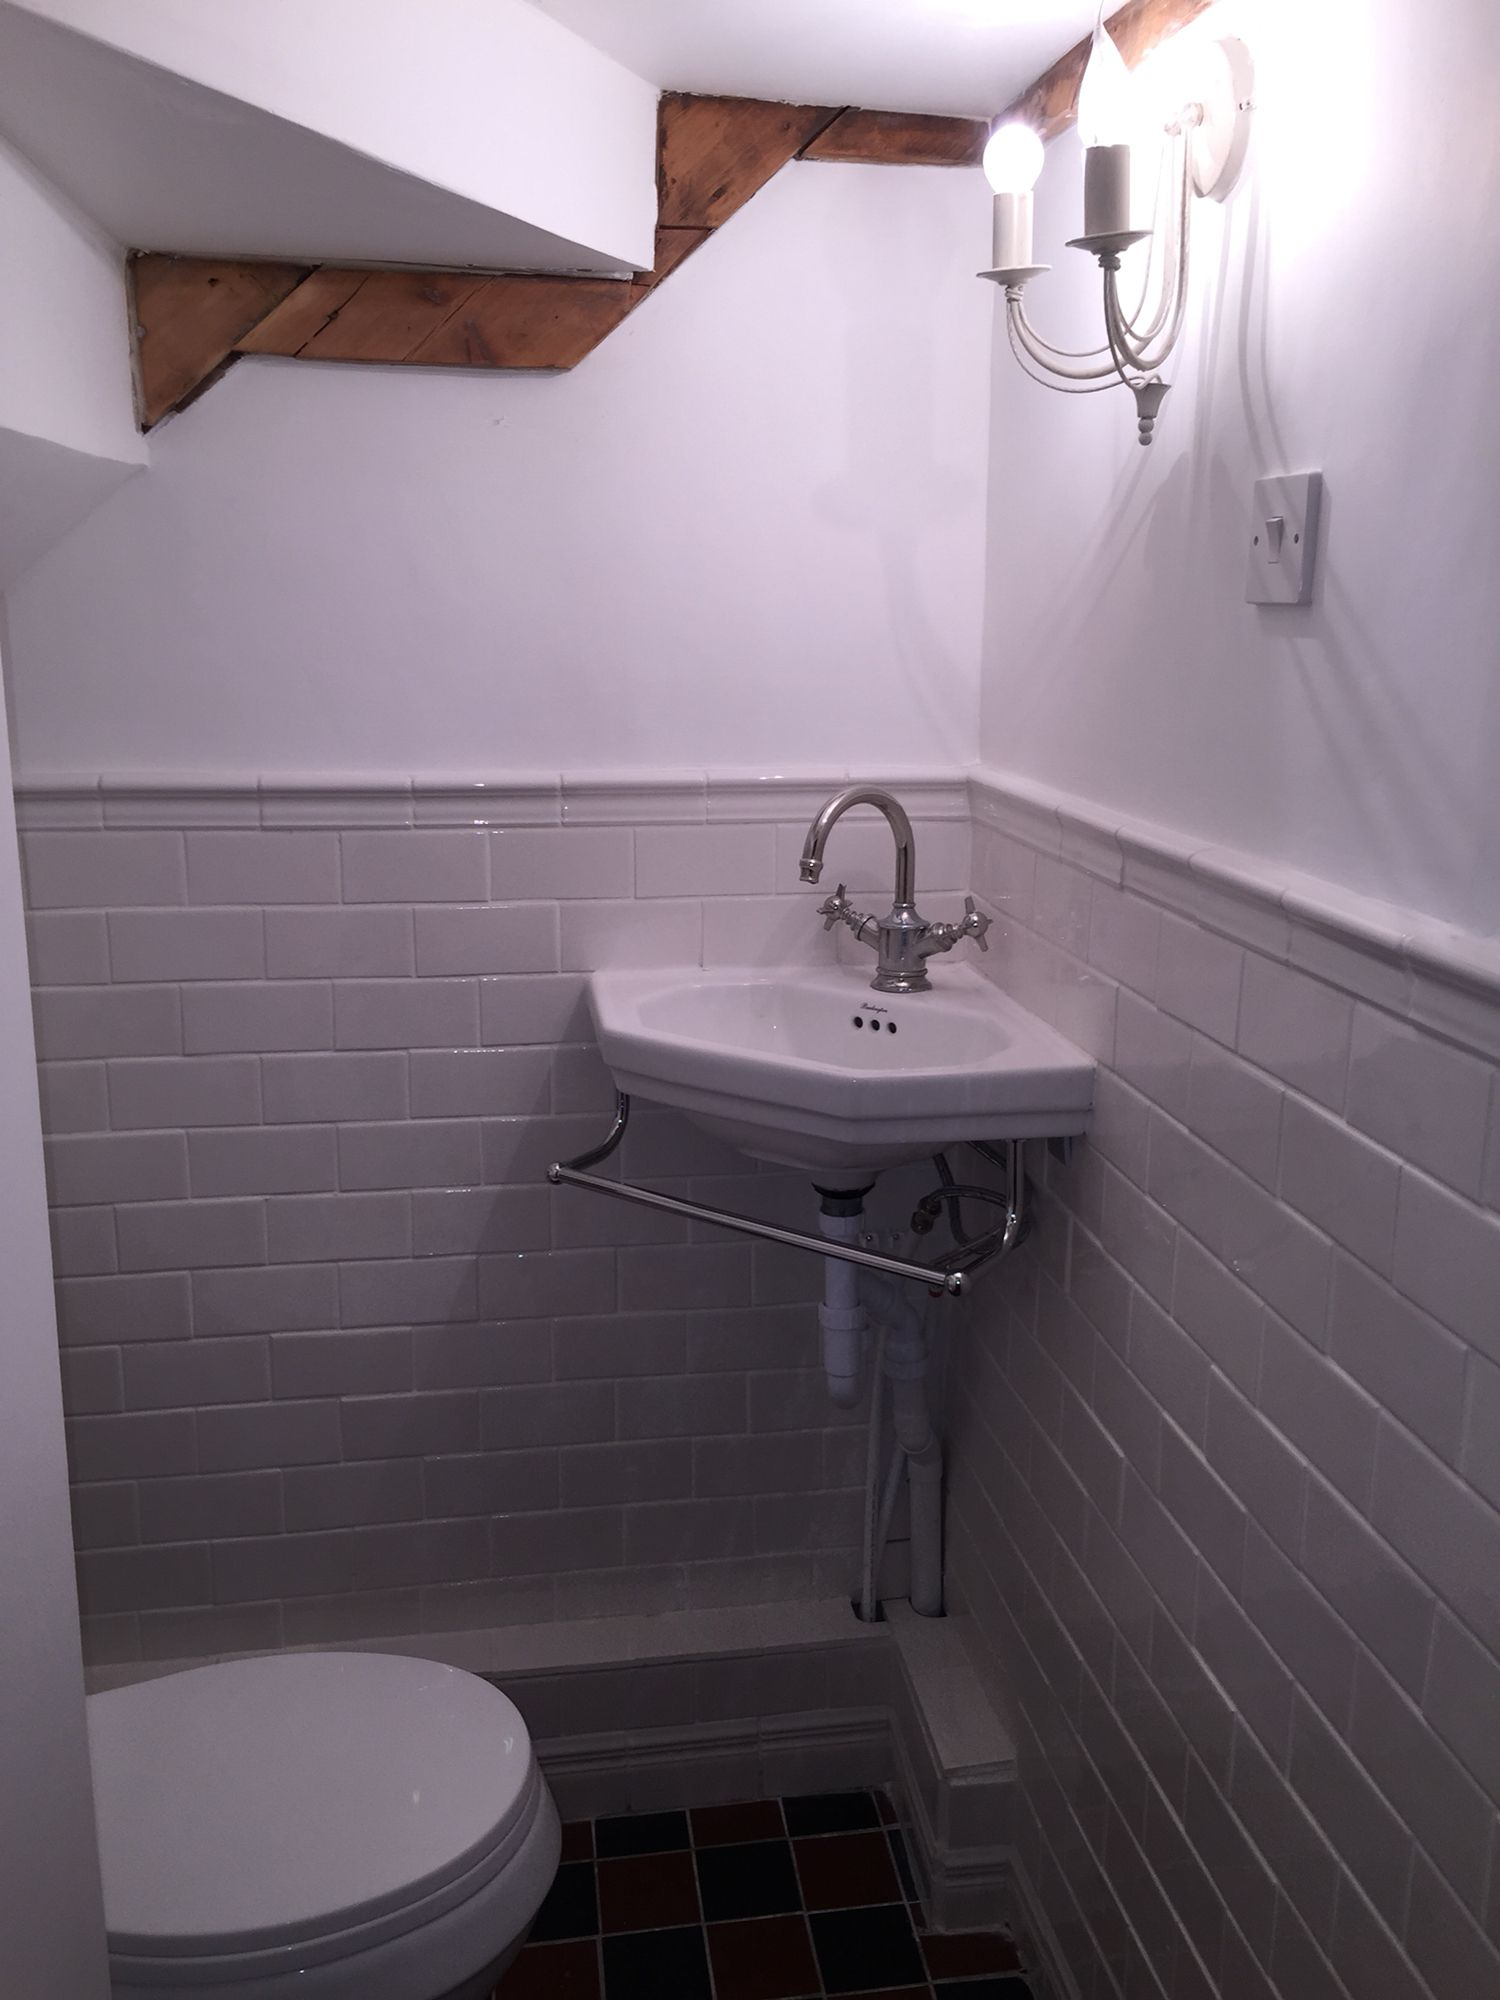 Lighting Basement Washroom Stairs: Small Under Stairs Toilet Newly Built With Victorian Style